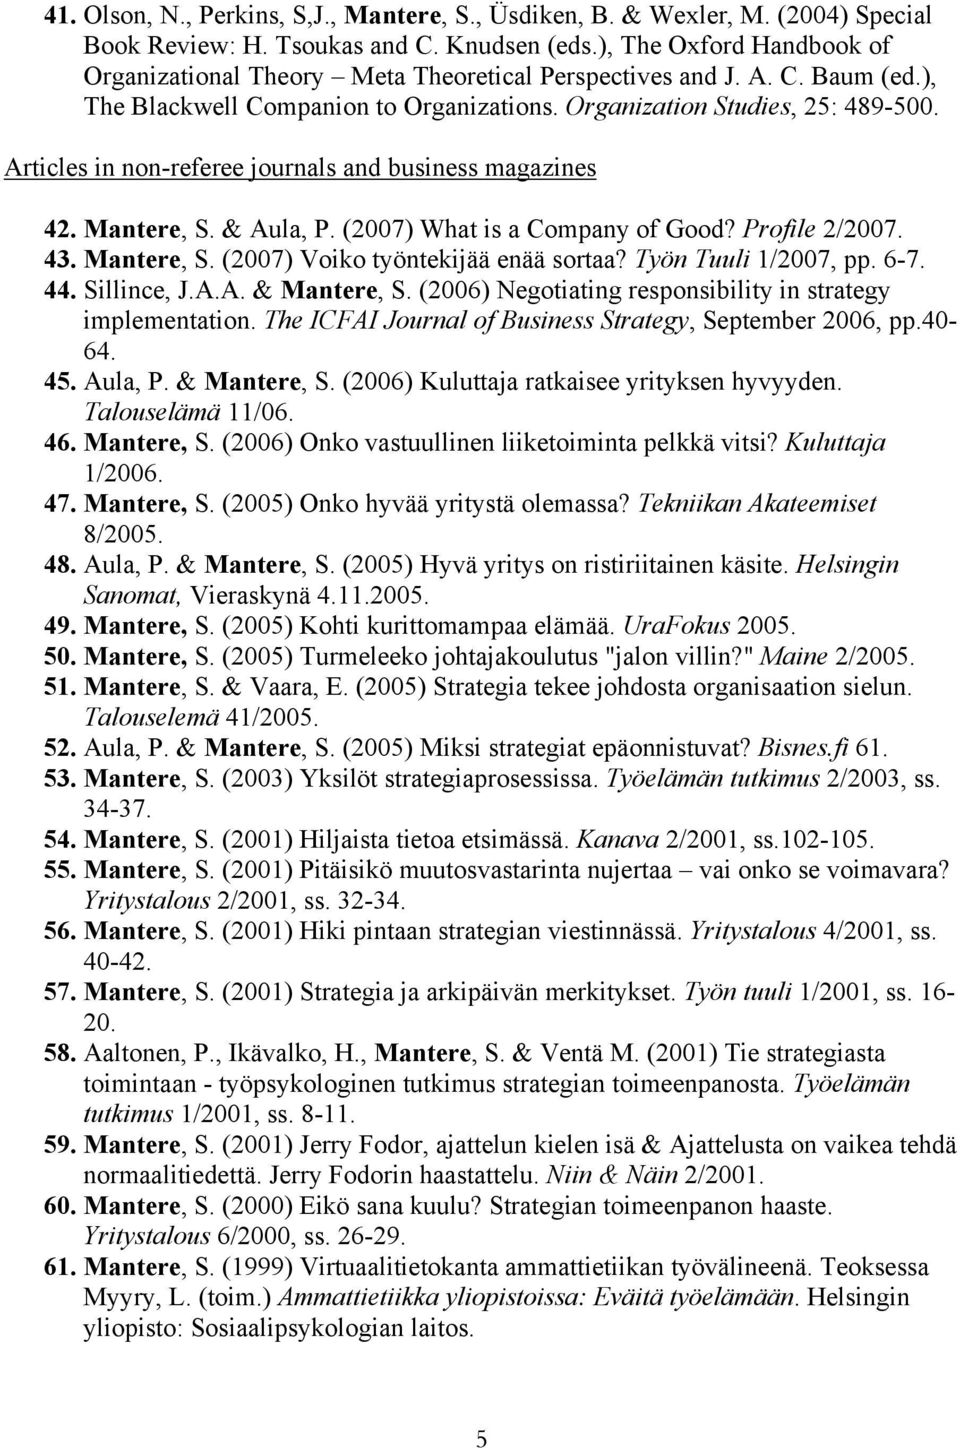 Articles in non-referee journals and business magazines 42. Mantere, S. & Aula, P. (2007) What is a Company of Good? Profile 2/2007. 43. Mantere, S. (2007) Voiko työntekijää enää sortaa?